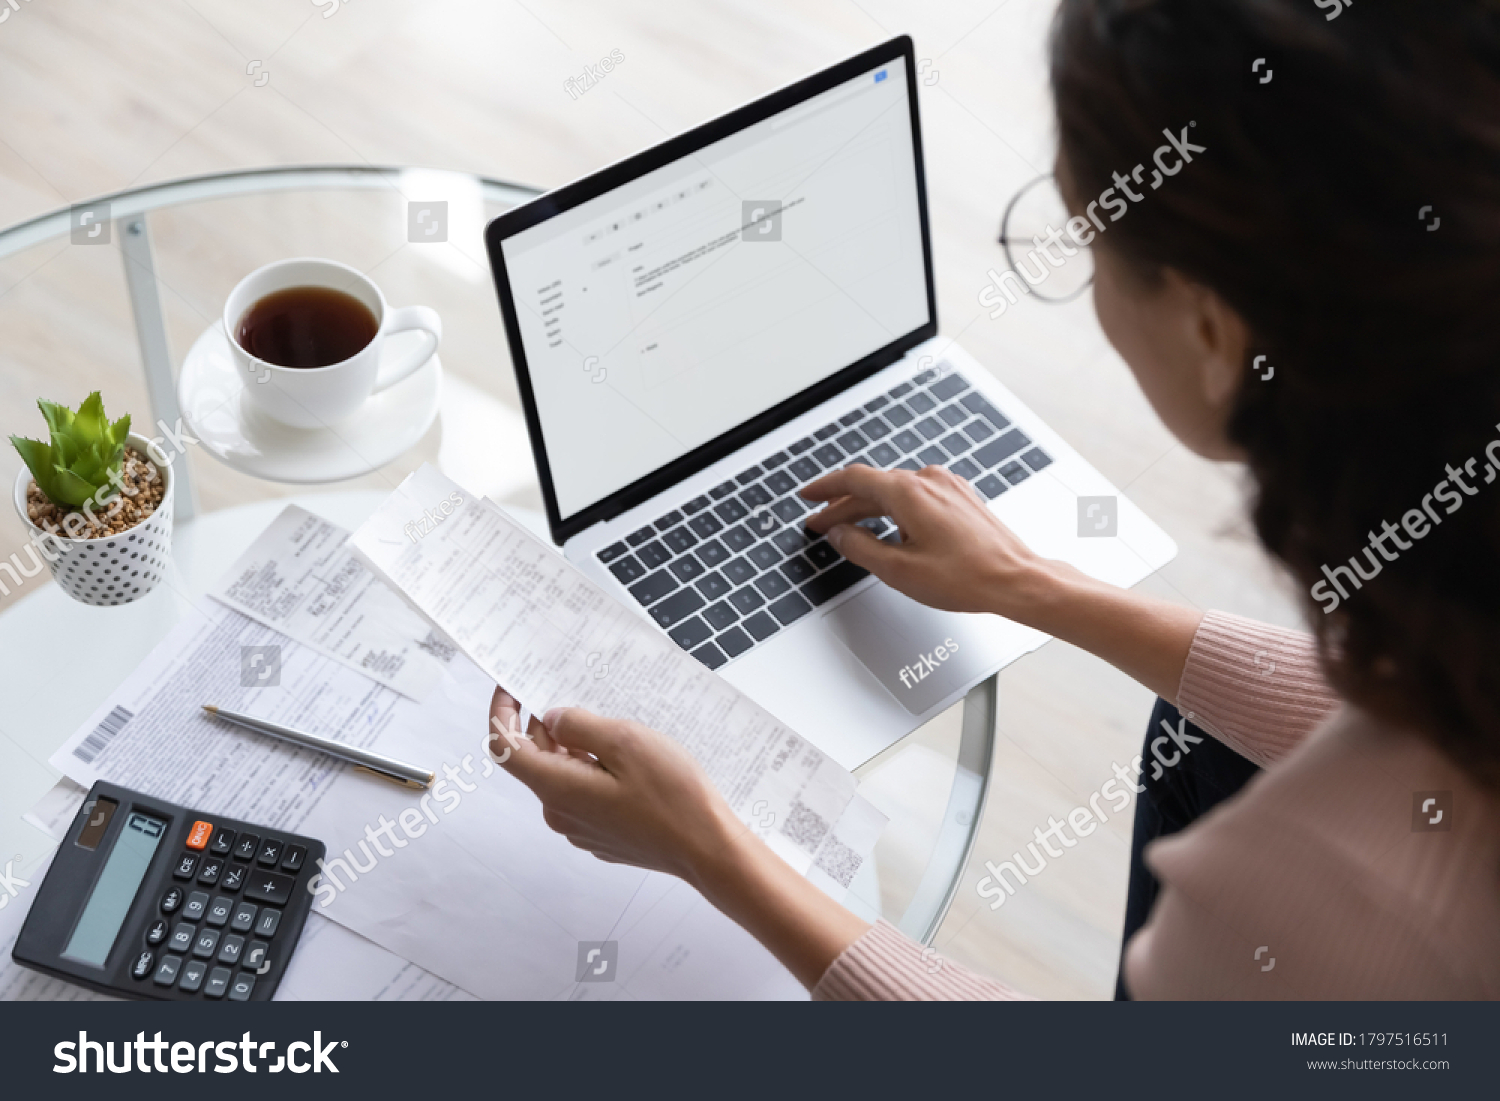 Close up top view of concentrated woman work on laptop manage family expenditures expenses using gadget, focused housewife busy calculating finances, plan budget on computer, pay bills or taxes online #1797516511